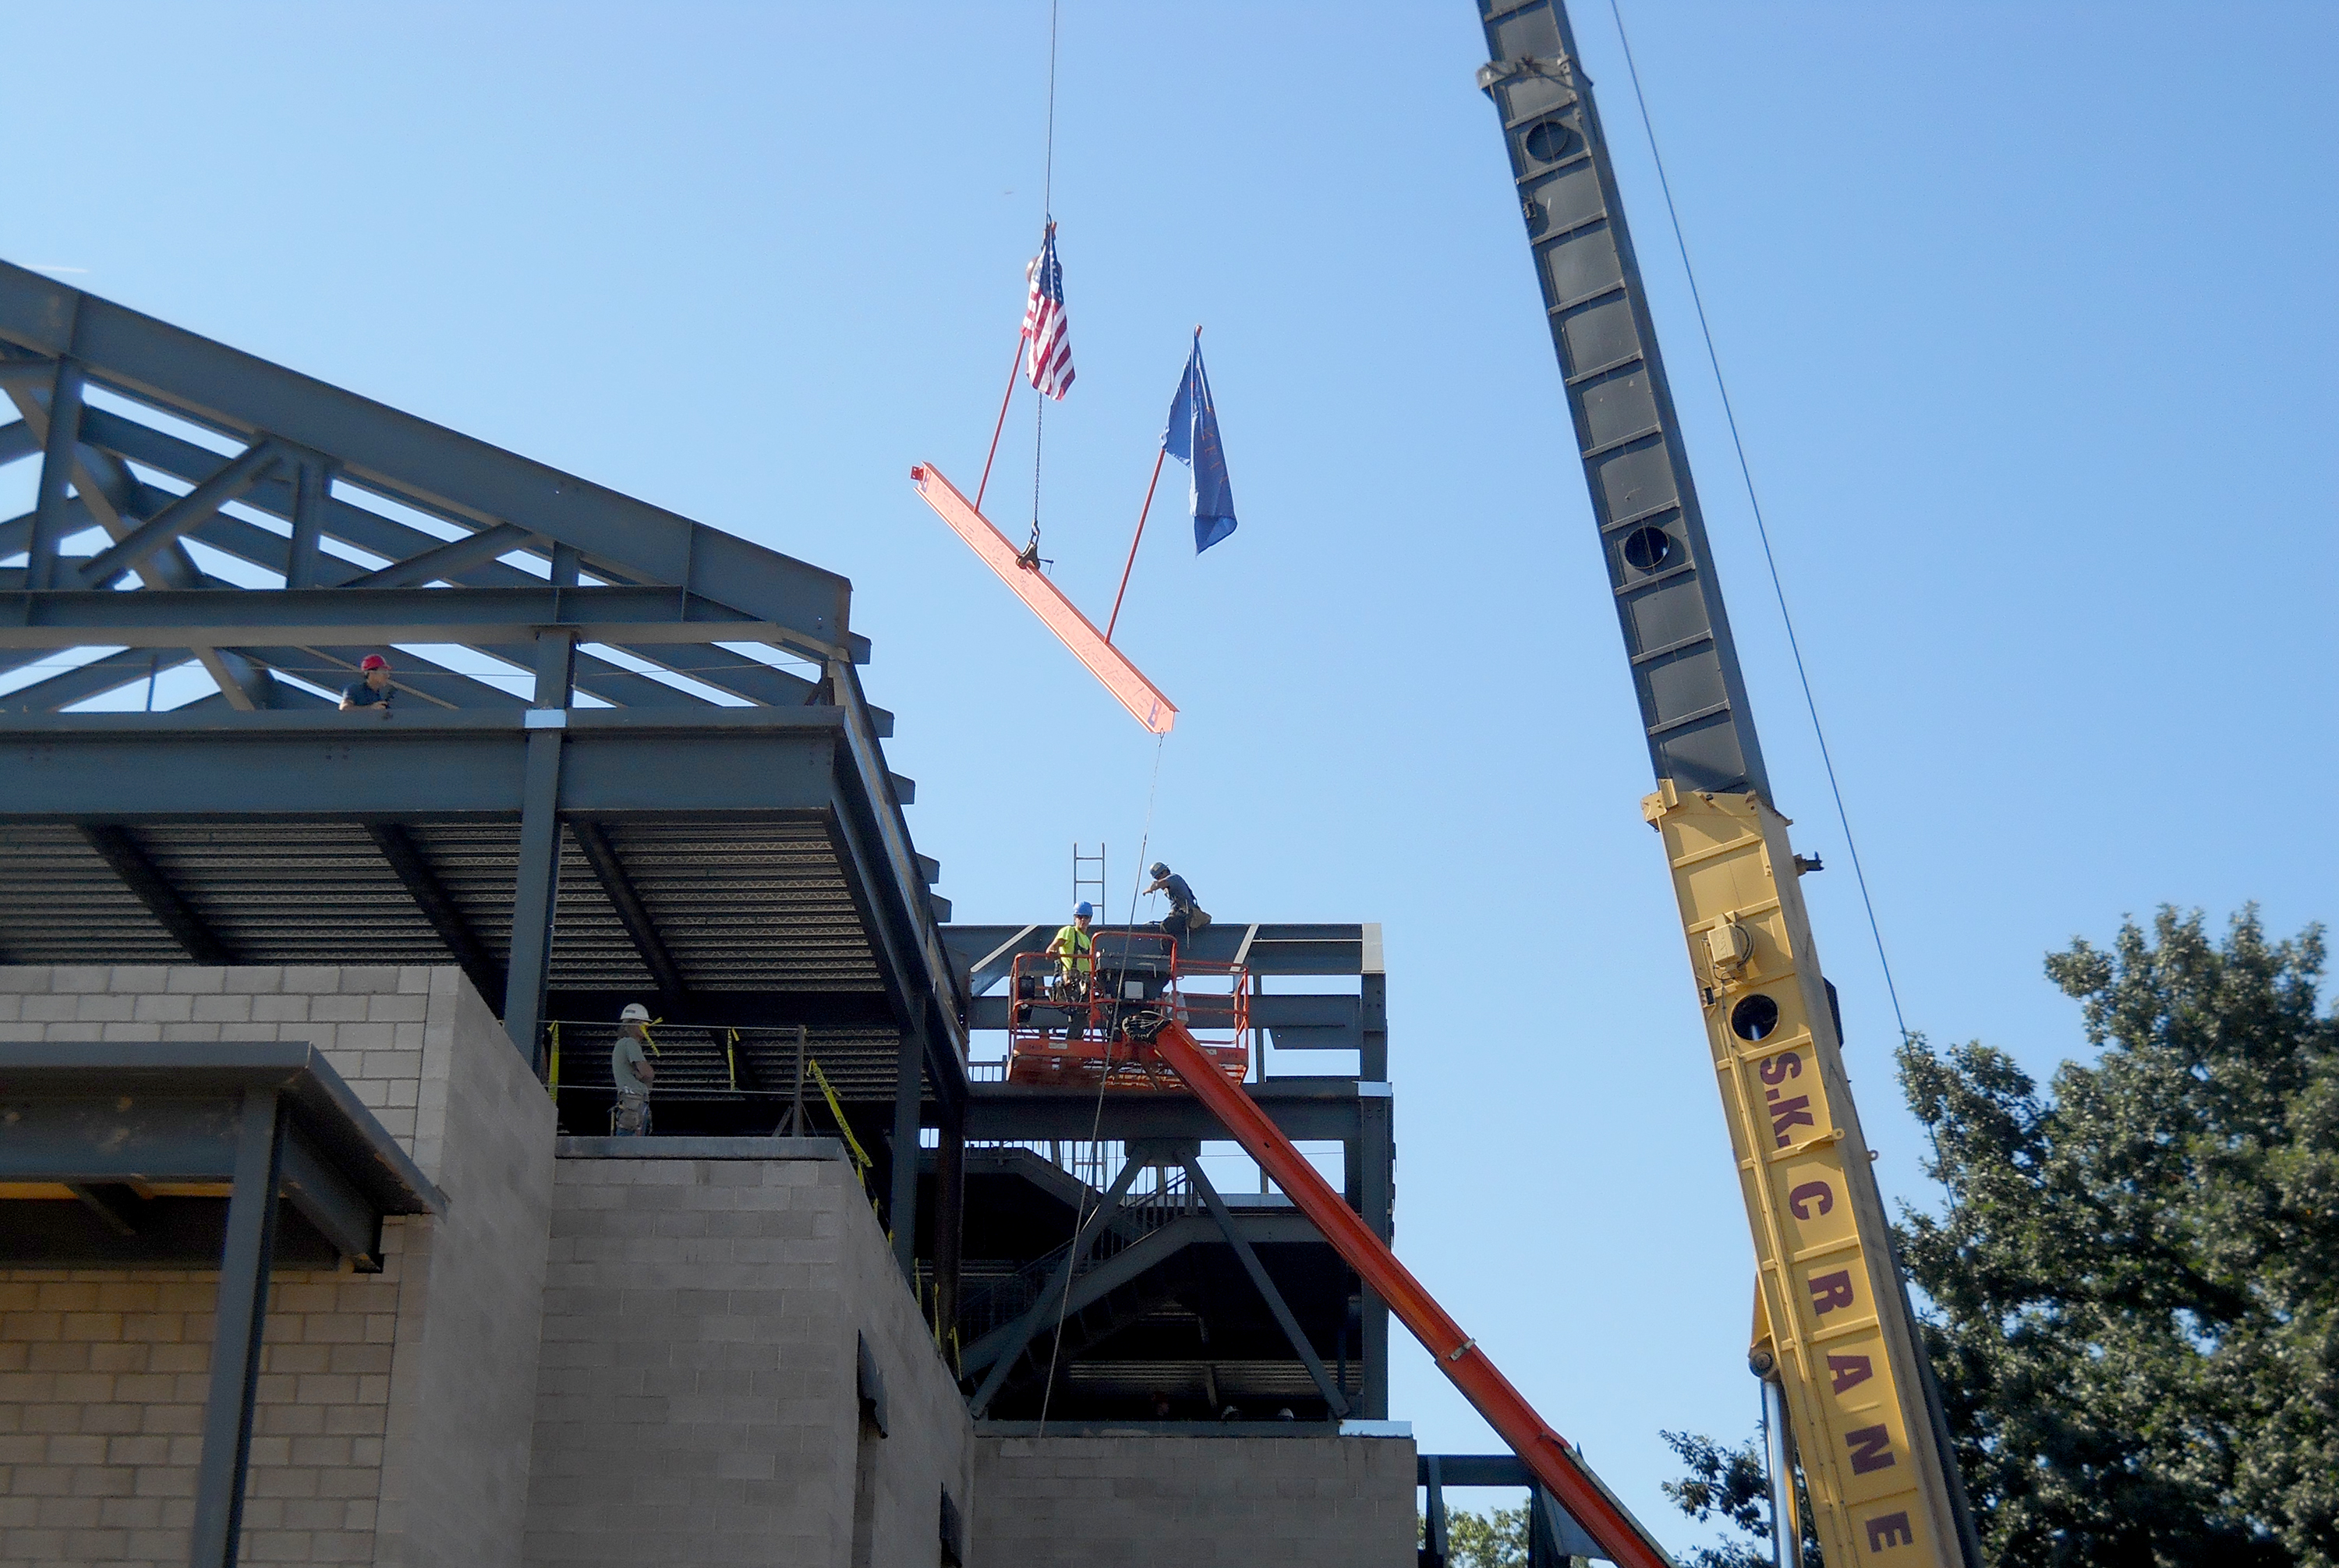 The final piece of steel is flown into place at the Academic West building of Bucknell University.